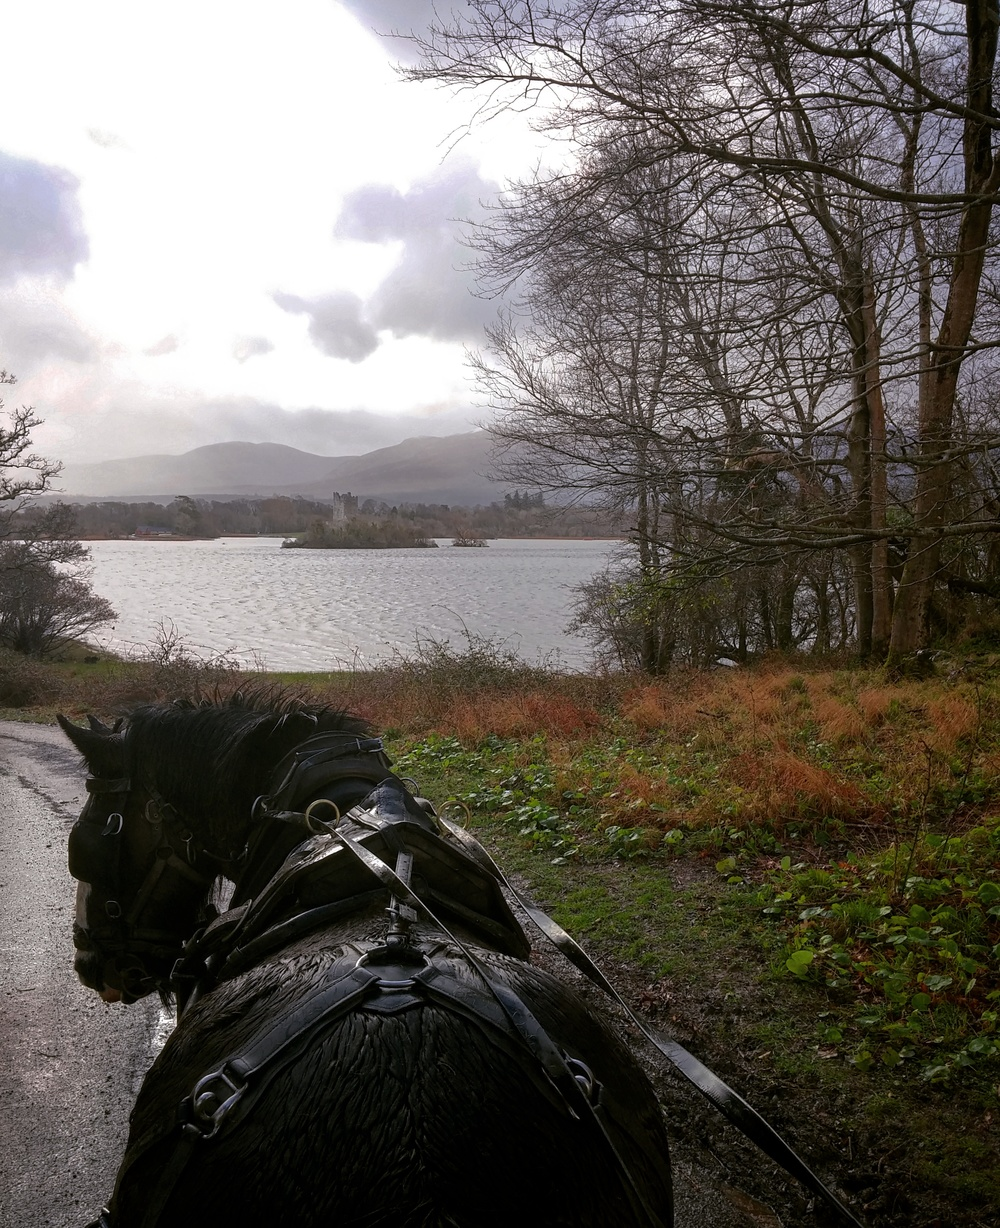 On our first morning in Ireland, Delilah the mare took us on a jaunty cart tour around the lake.